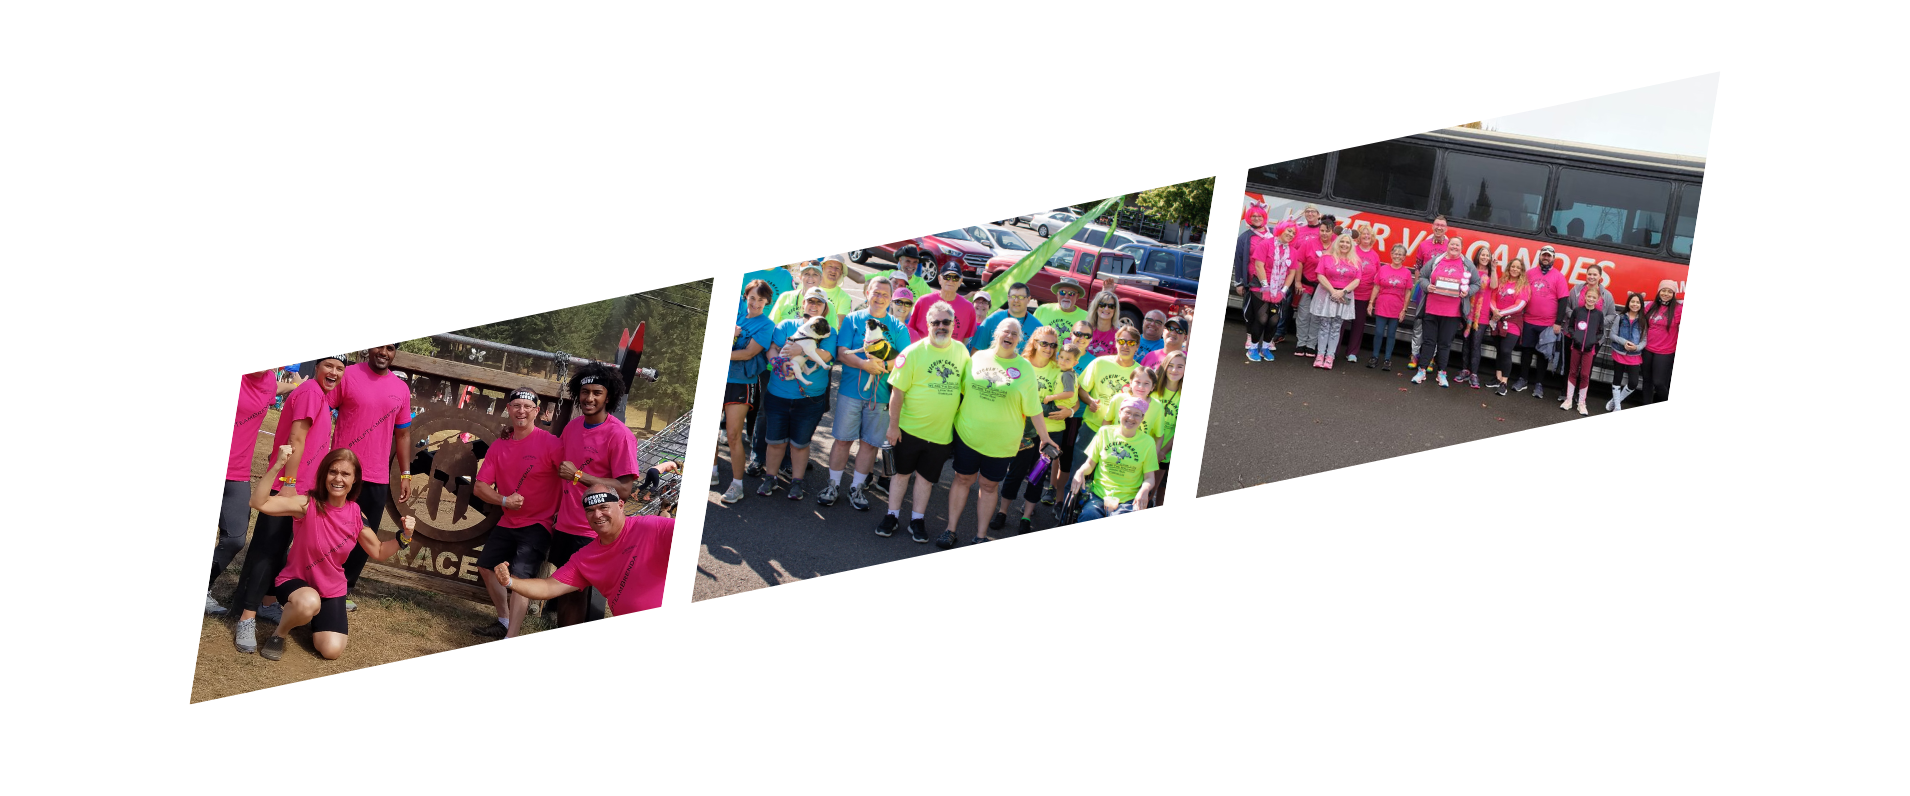 Growth of the Movement